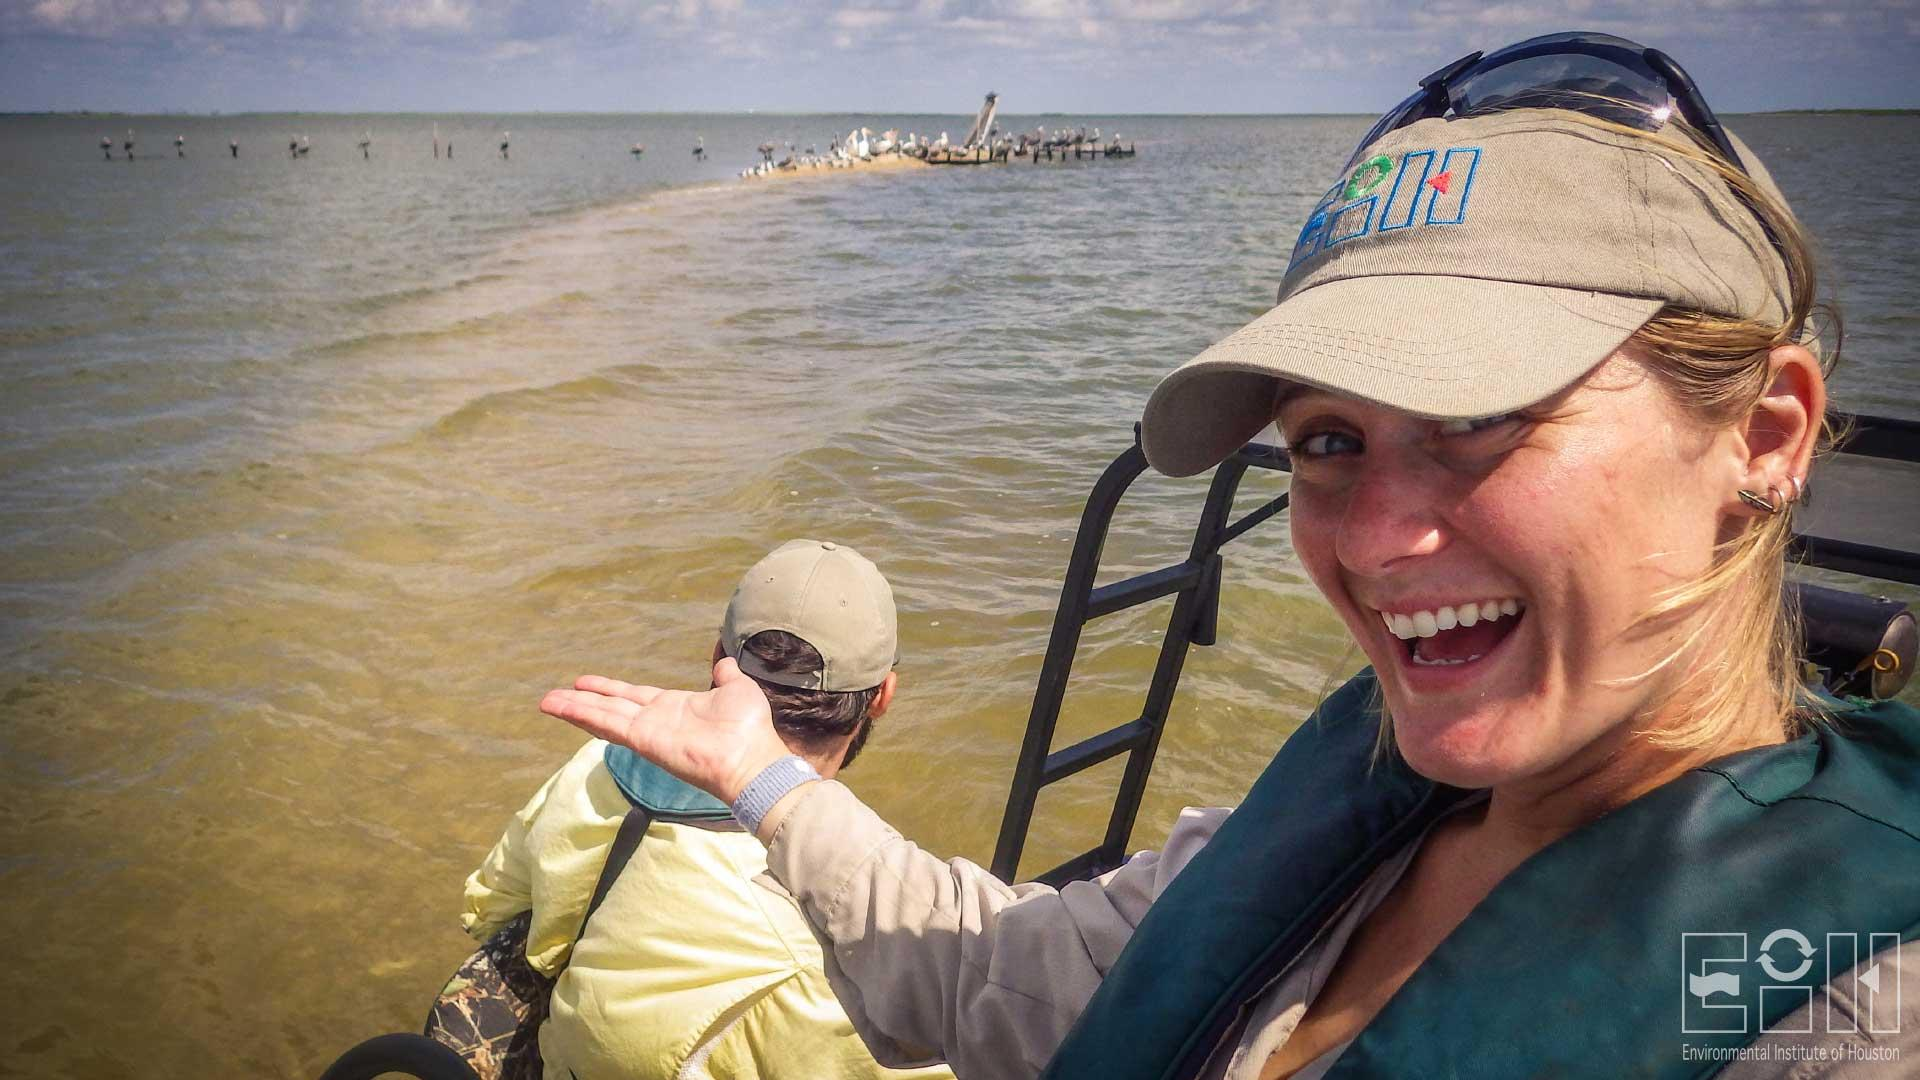 Assessment of Shorebird Populations in Galveston Bay Using Conventional and UAV Techniques